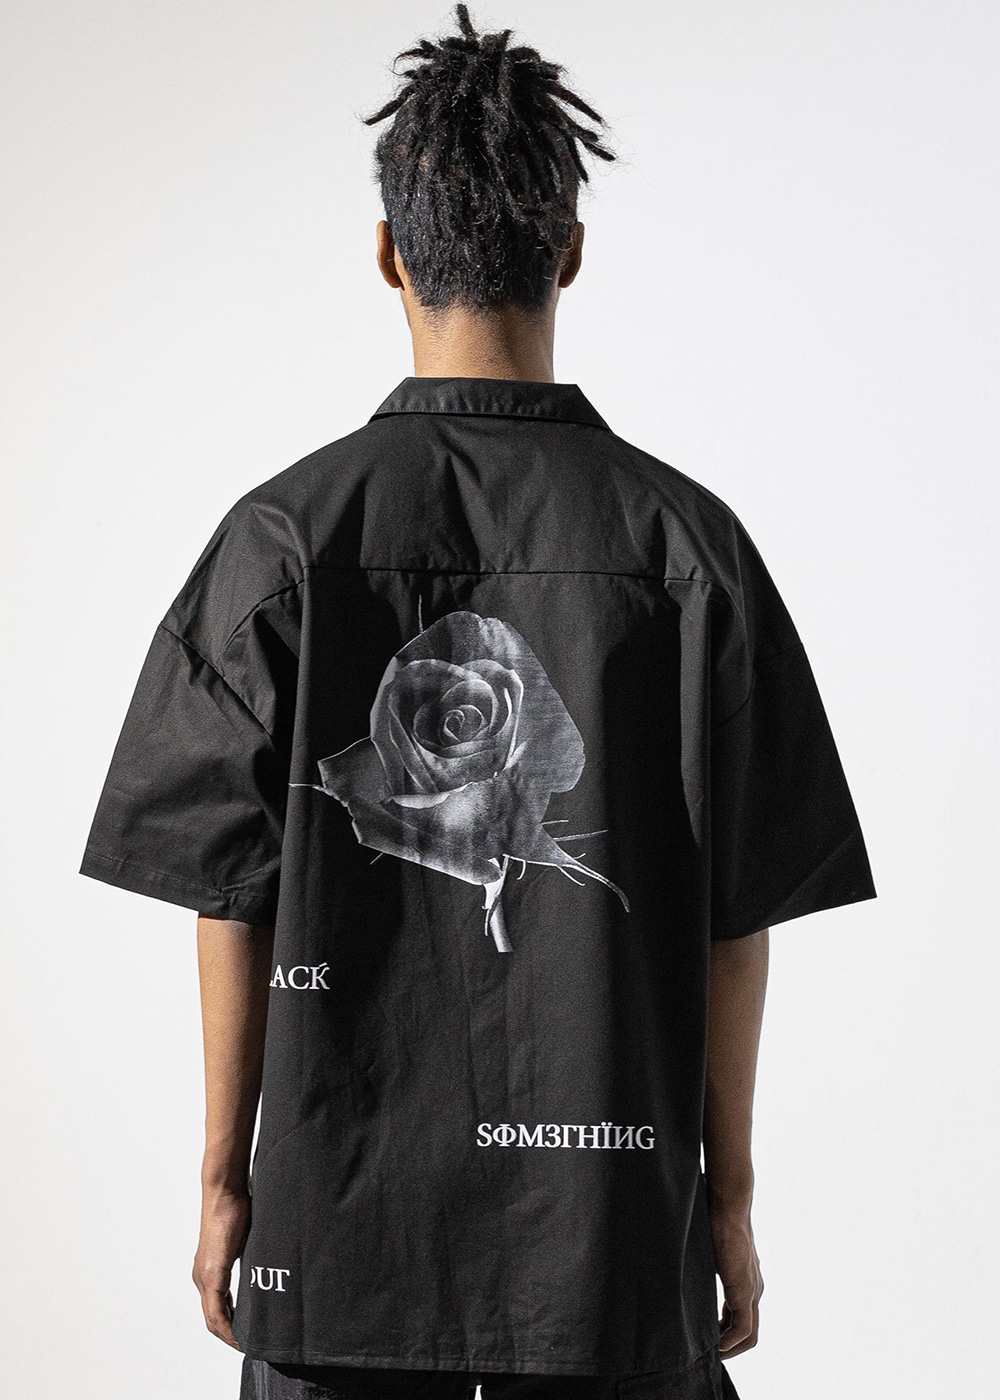 BLACK ROSE OVERSIZED SHIRT MUVST002-BK